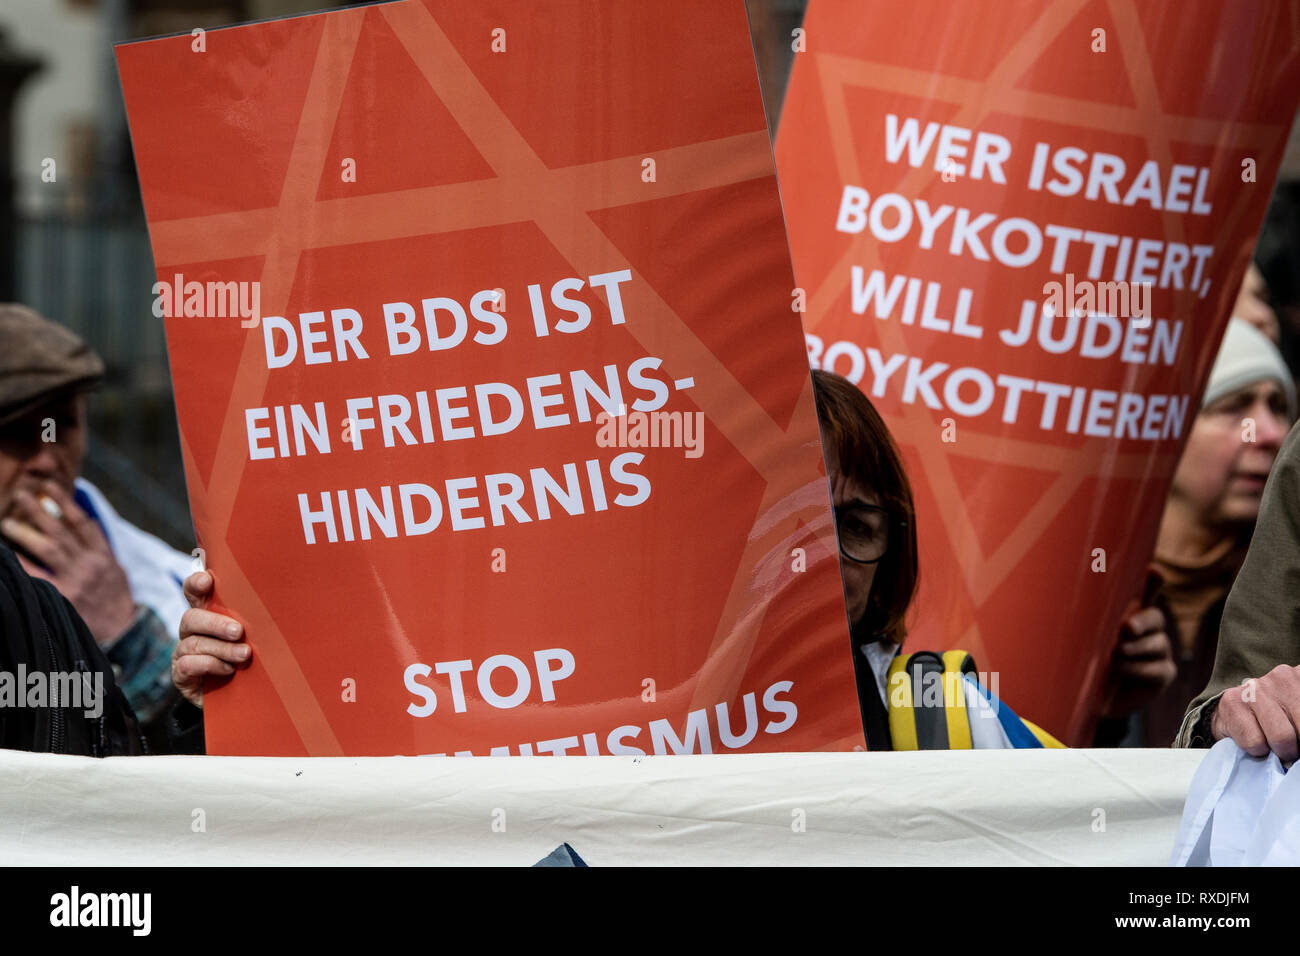 Göttingen, Germany. 9th Mar 2019. Participants with posters of the Alliance against Anti-Semitism and Anti-Zionism 'Jachad' protest under the motto 'No peace with the enemies of Israel' during the awarding of the Göttingen Peace Prize 2019 to the association 'Jewish Voice for Just Peace in the Middle East'. The Central Council of Jews in Germany accuses the 'Jewish Voice' of supporting the anti-Semitic boycott movement BDS Credit: dpa picture alliance/Alamy Live News - Stock Image